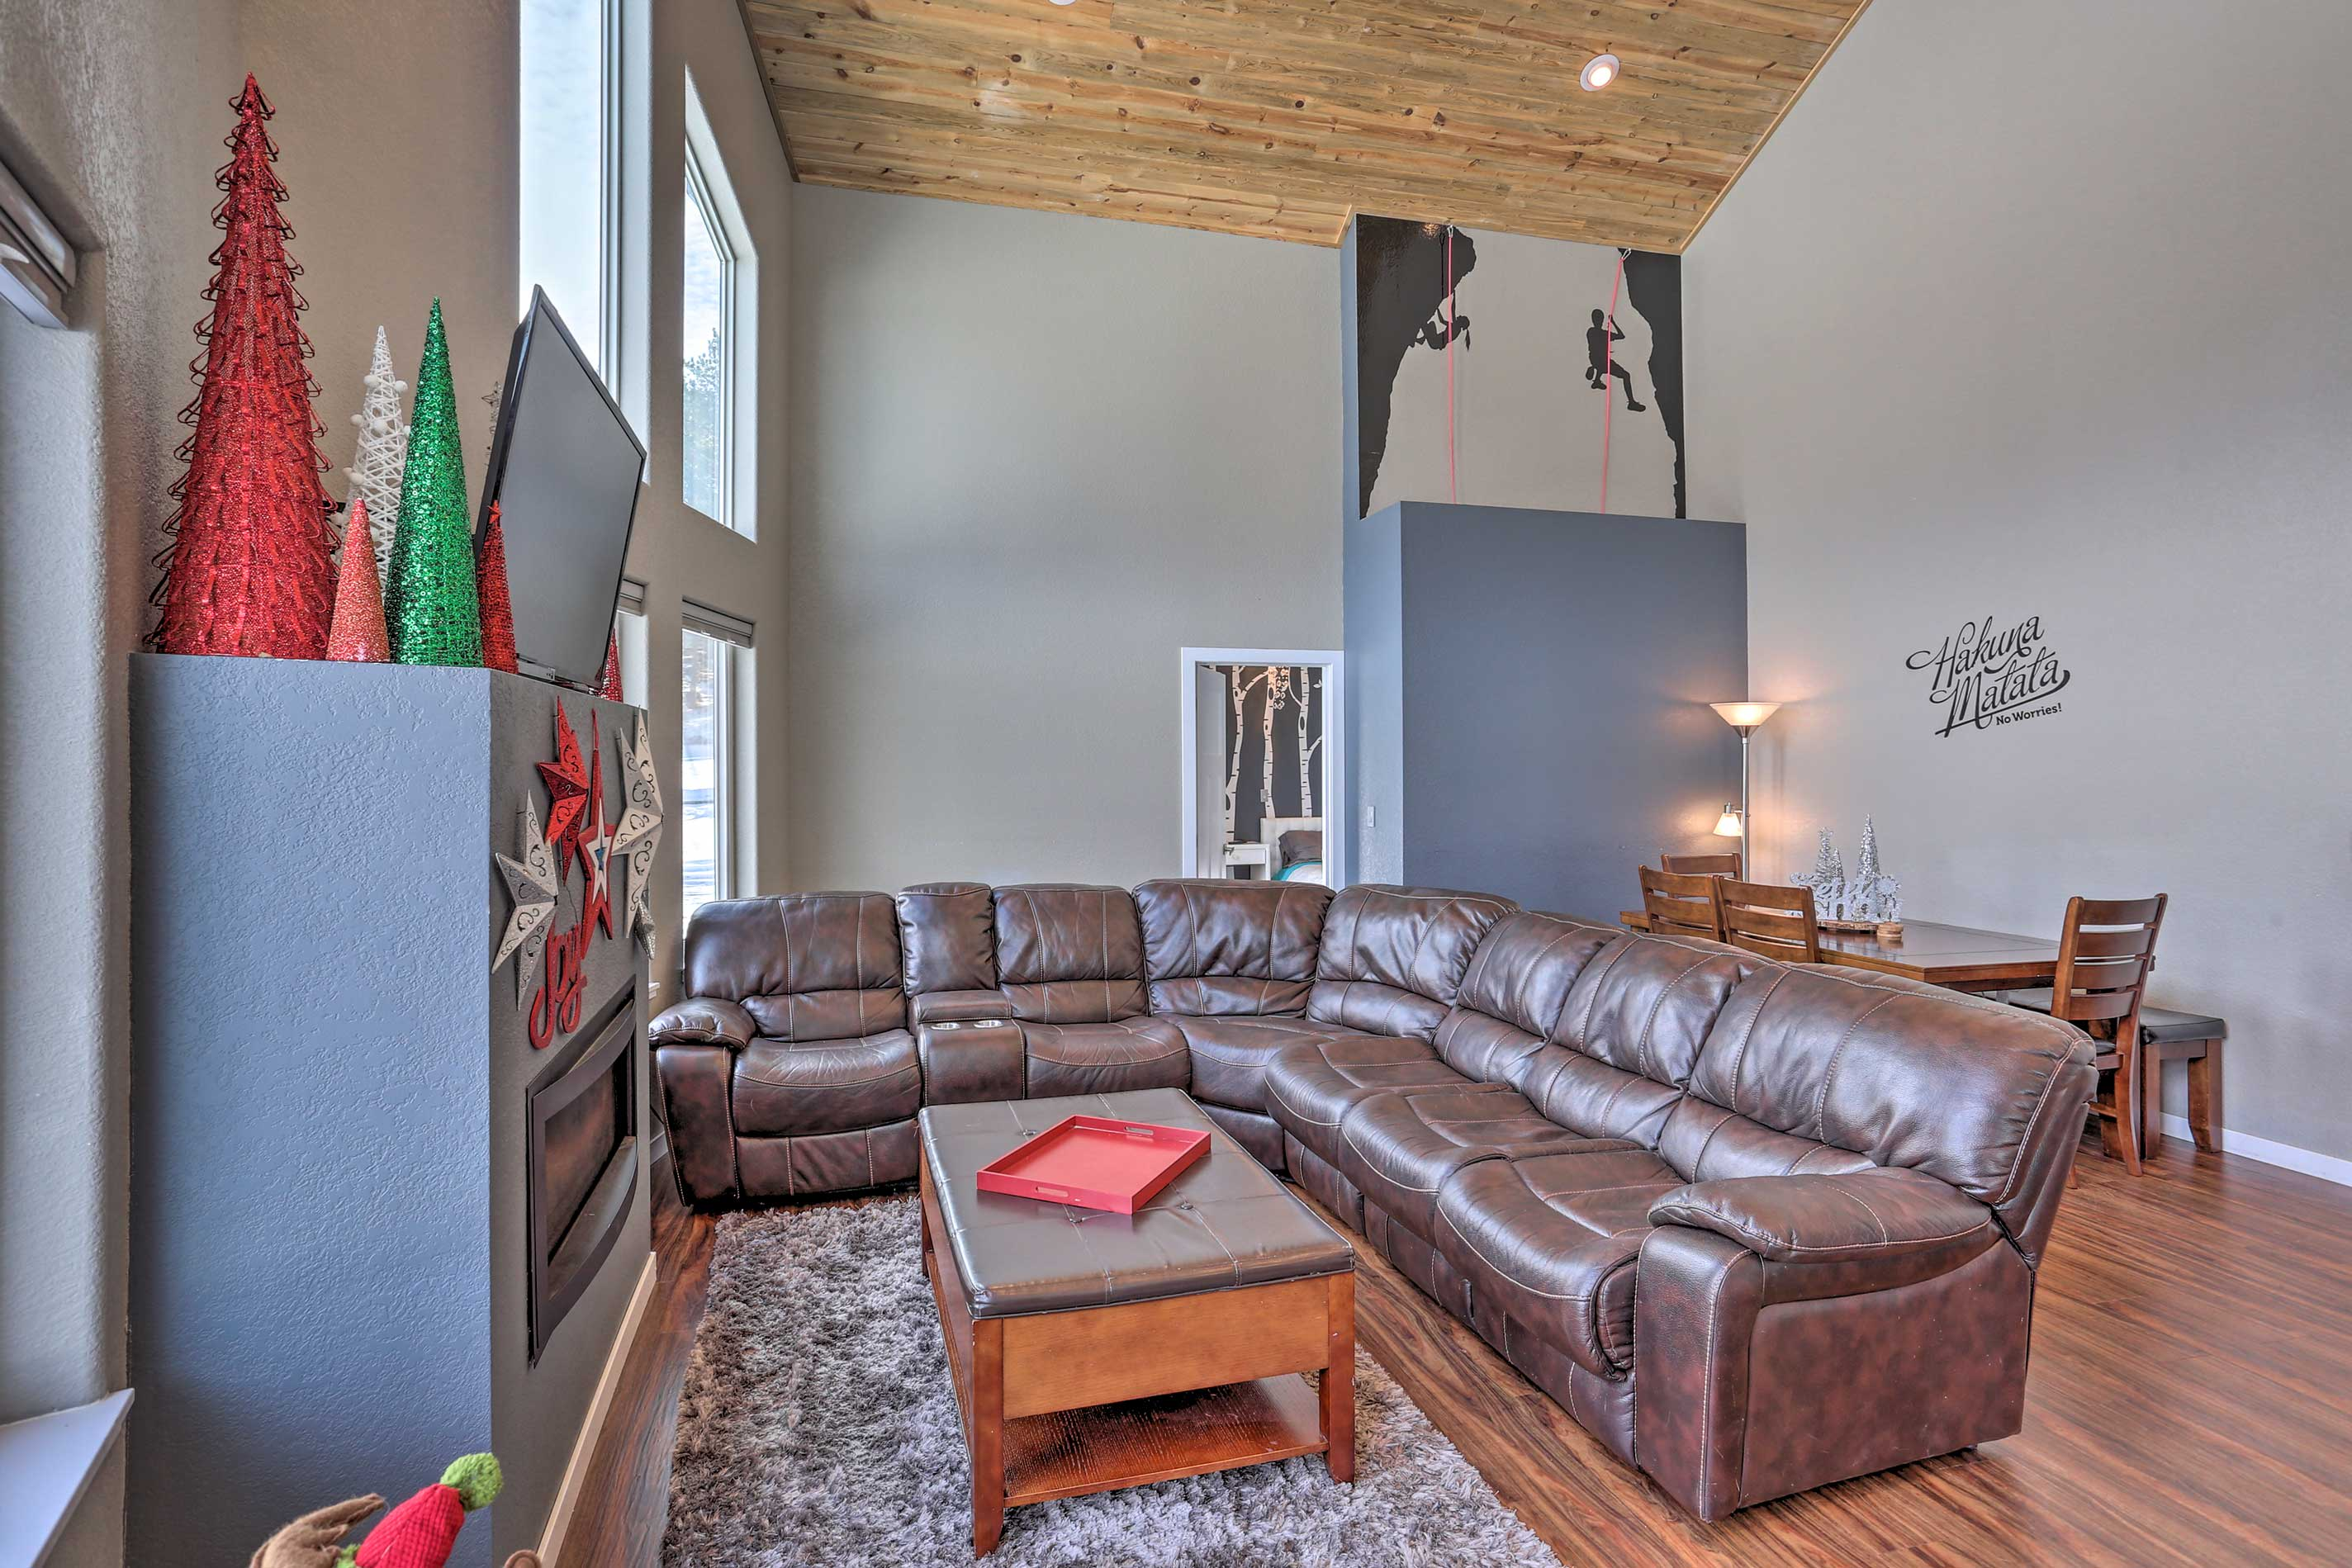 This 3-bedroom, 2-bath vacation rental boasts 1,250 square feet of living space.